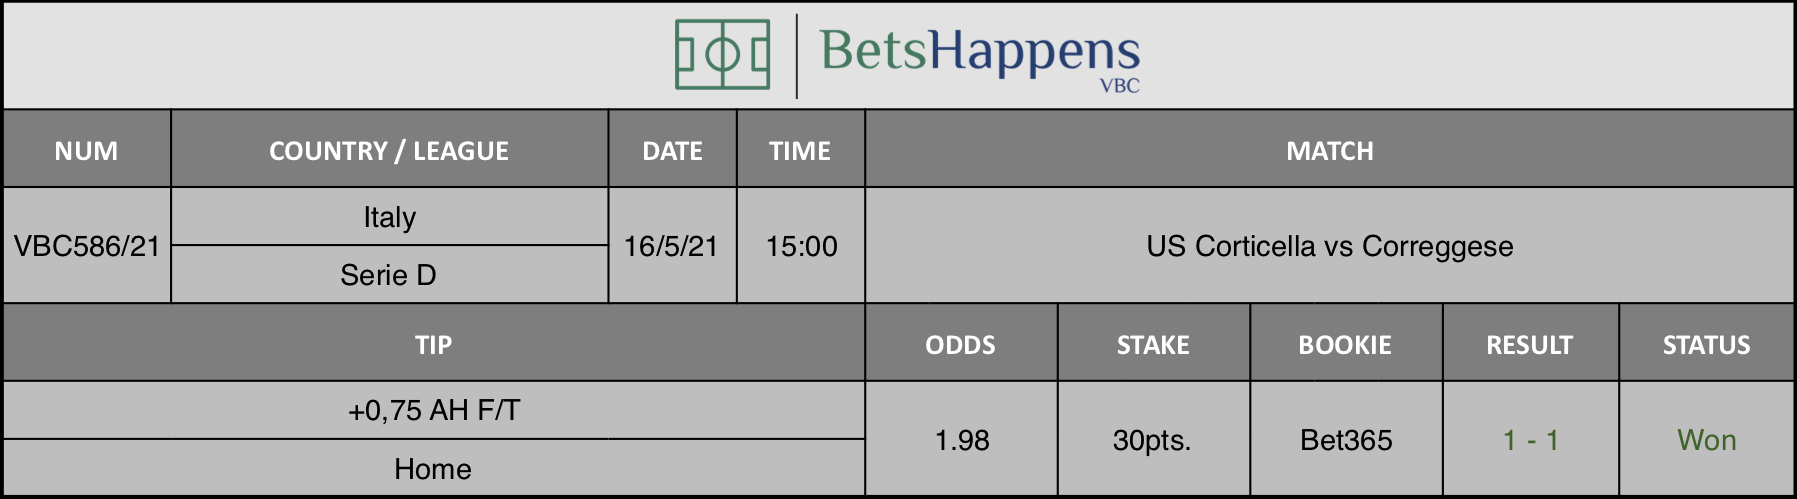 Results of our tip for the US Corticella vs Correggese match where +0,75 AH F/T Home is recommended.